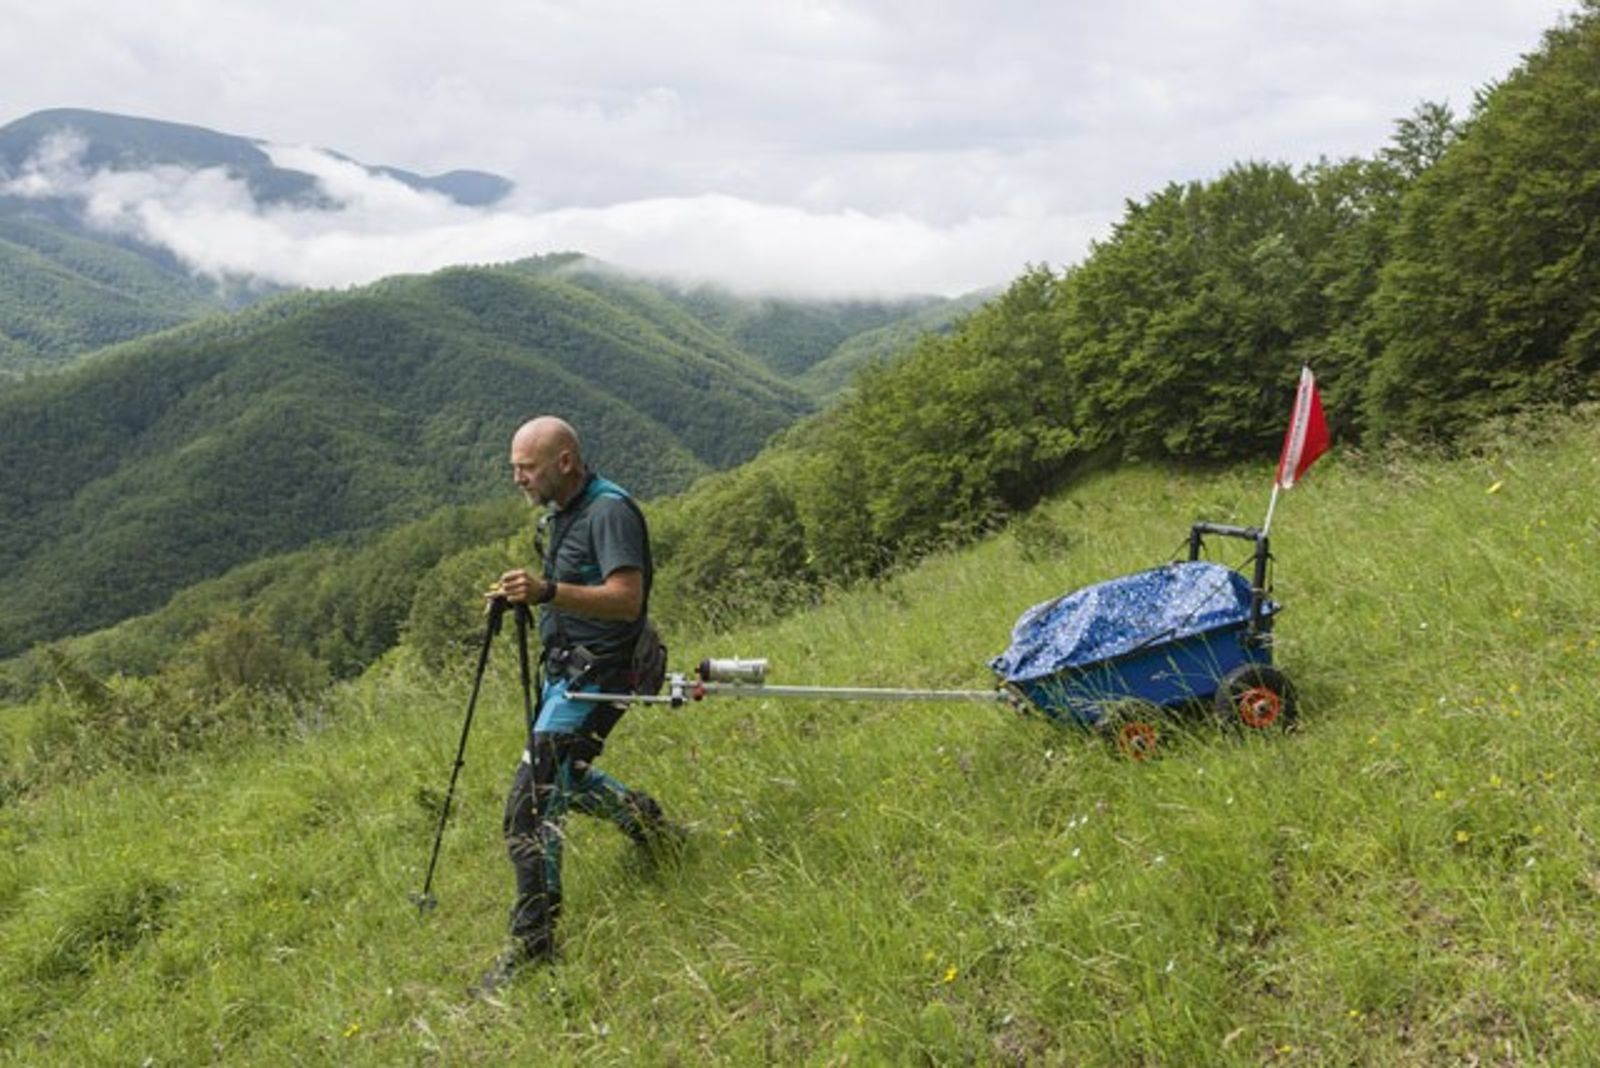 Tuscany: what on earth is armadillo trekking?